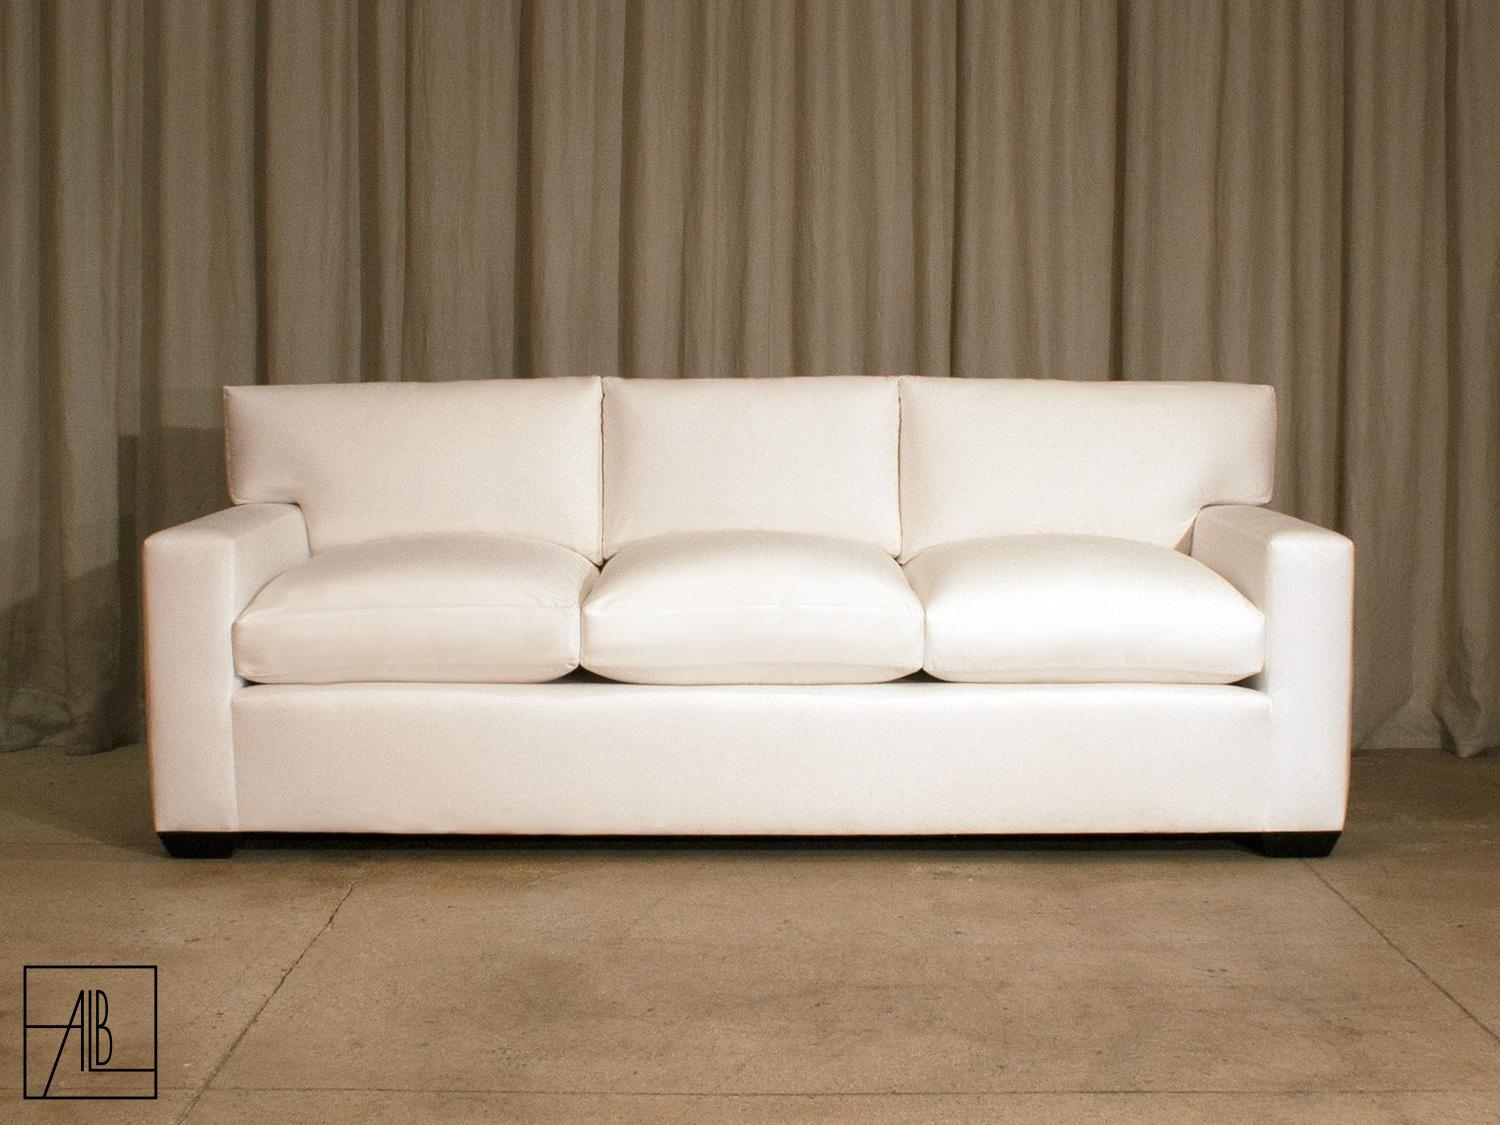 jean michel frank style sofa beds shops slough 20 collection of loose pillow back sofas ideas